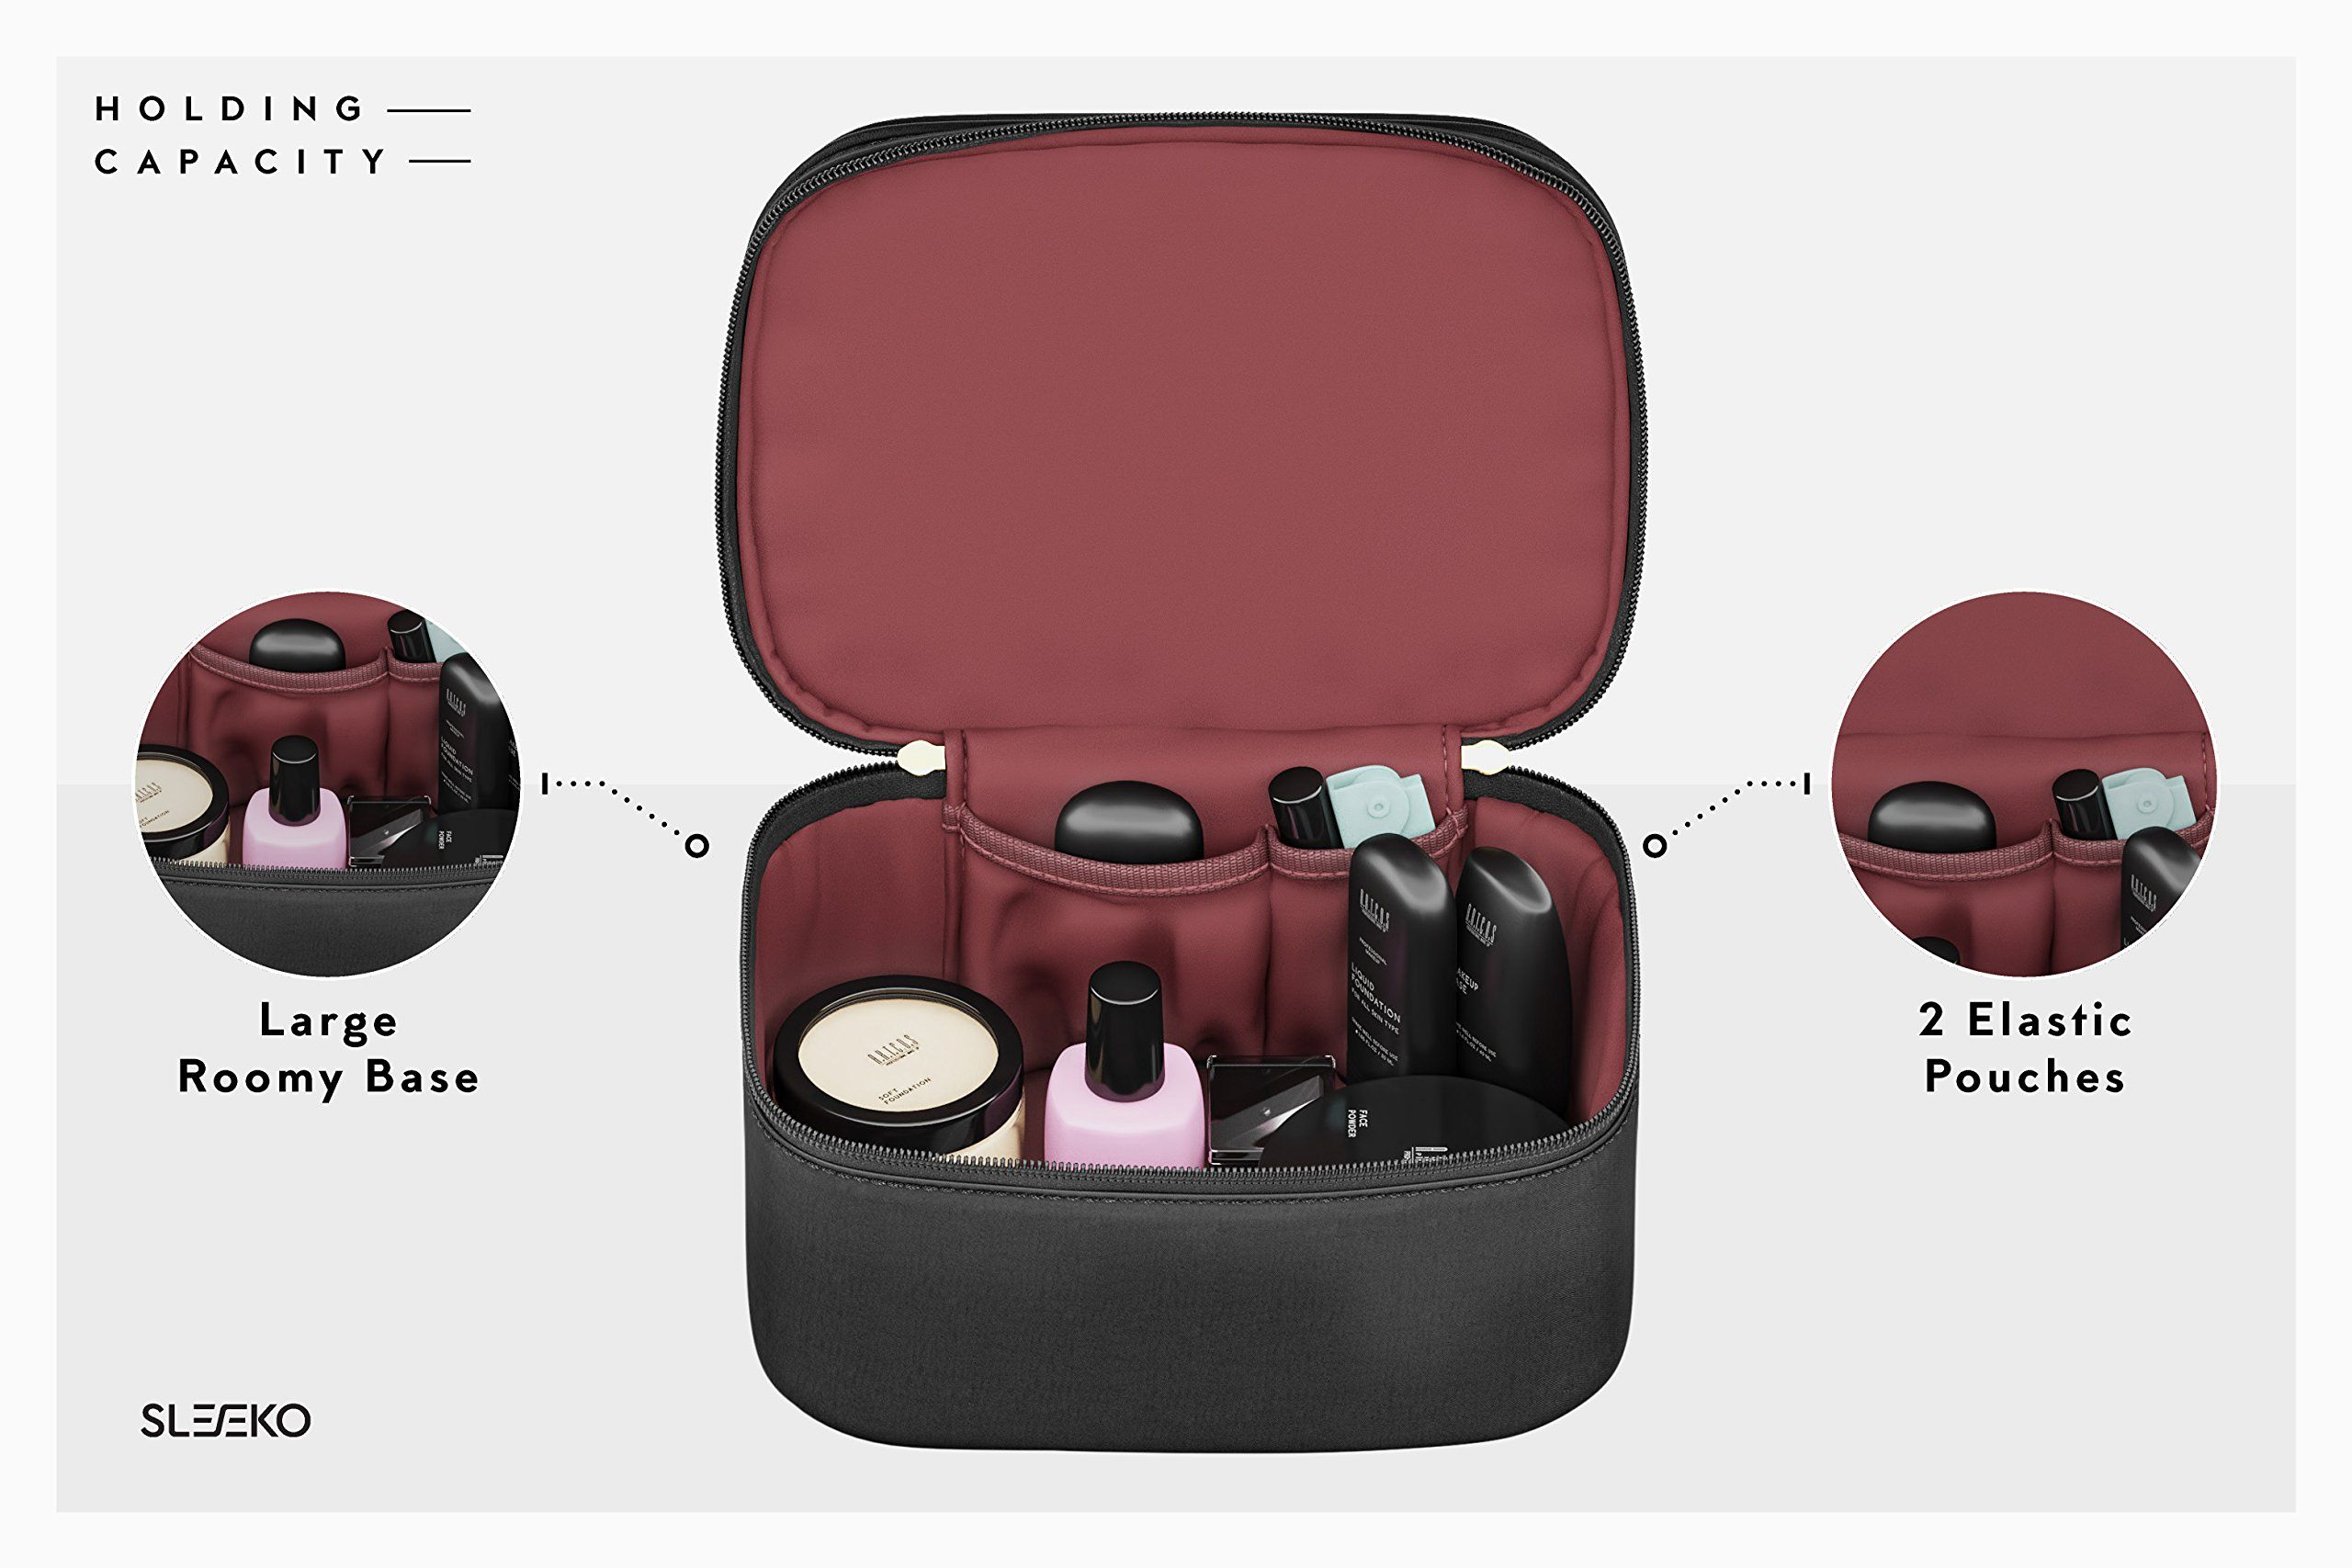 Makeup Organizer Soft Train Case Cosmetic Bag With Compartments For